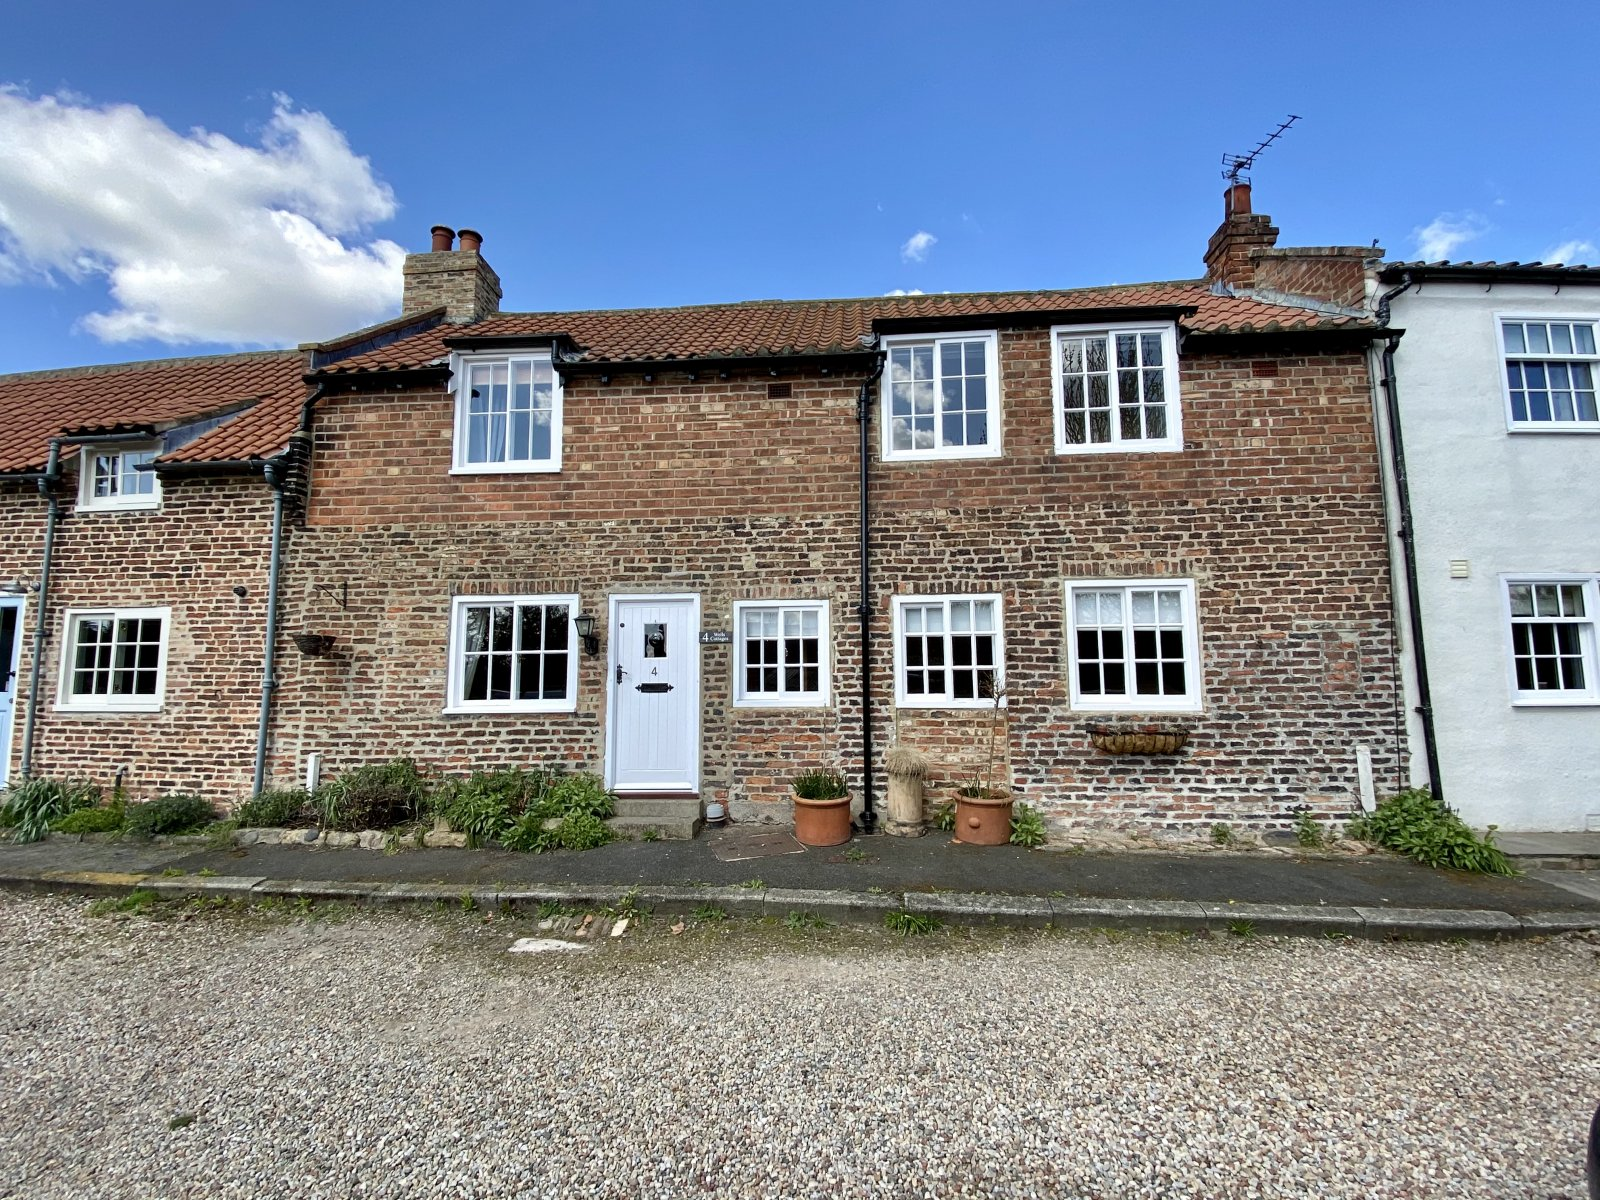 3 bed house for sale in Wells Cottages, Egglescliffe 1